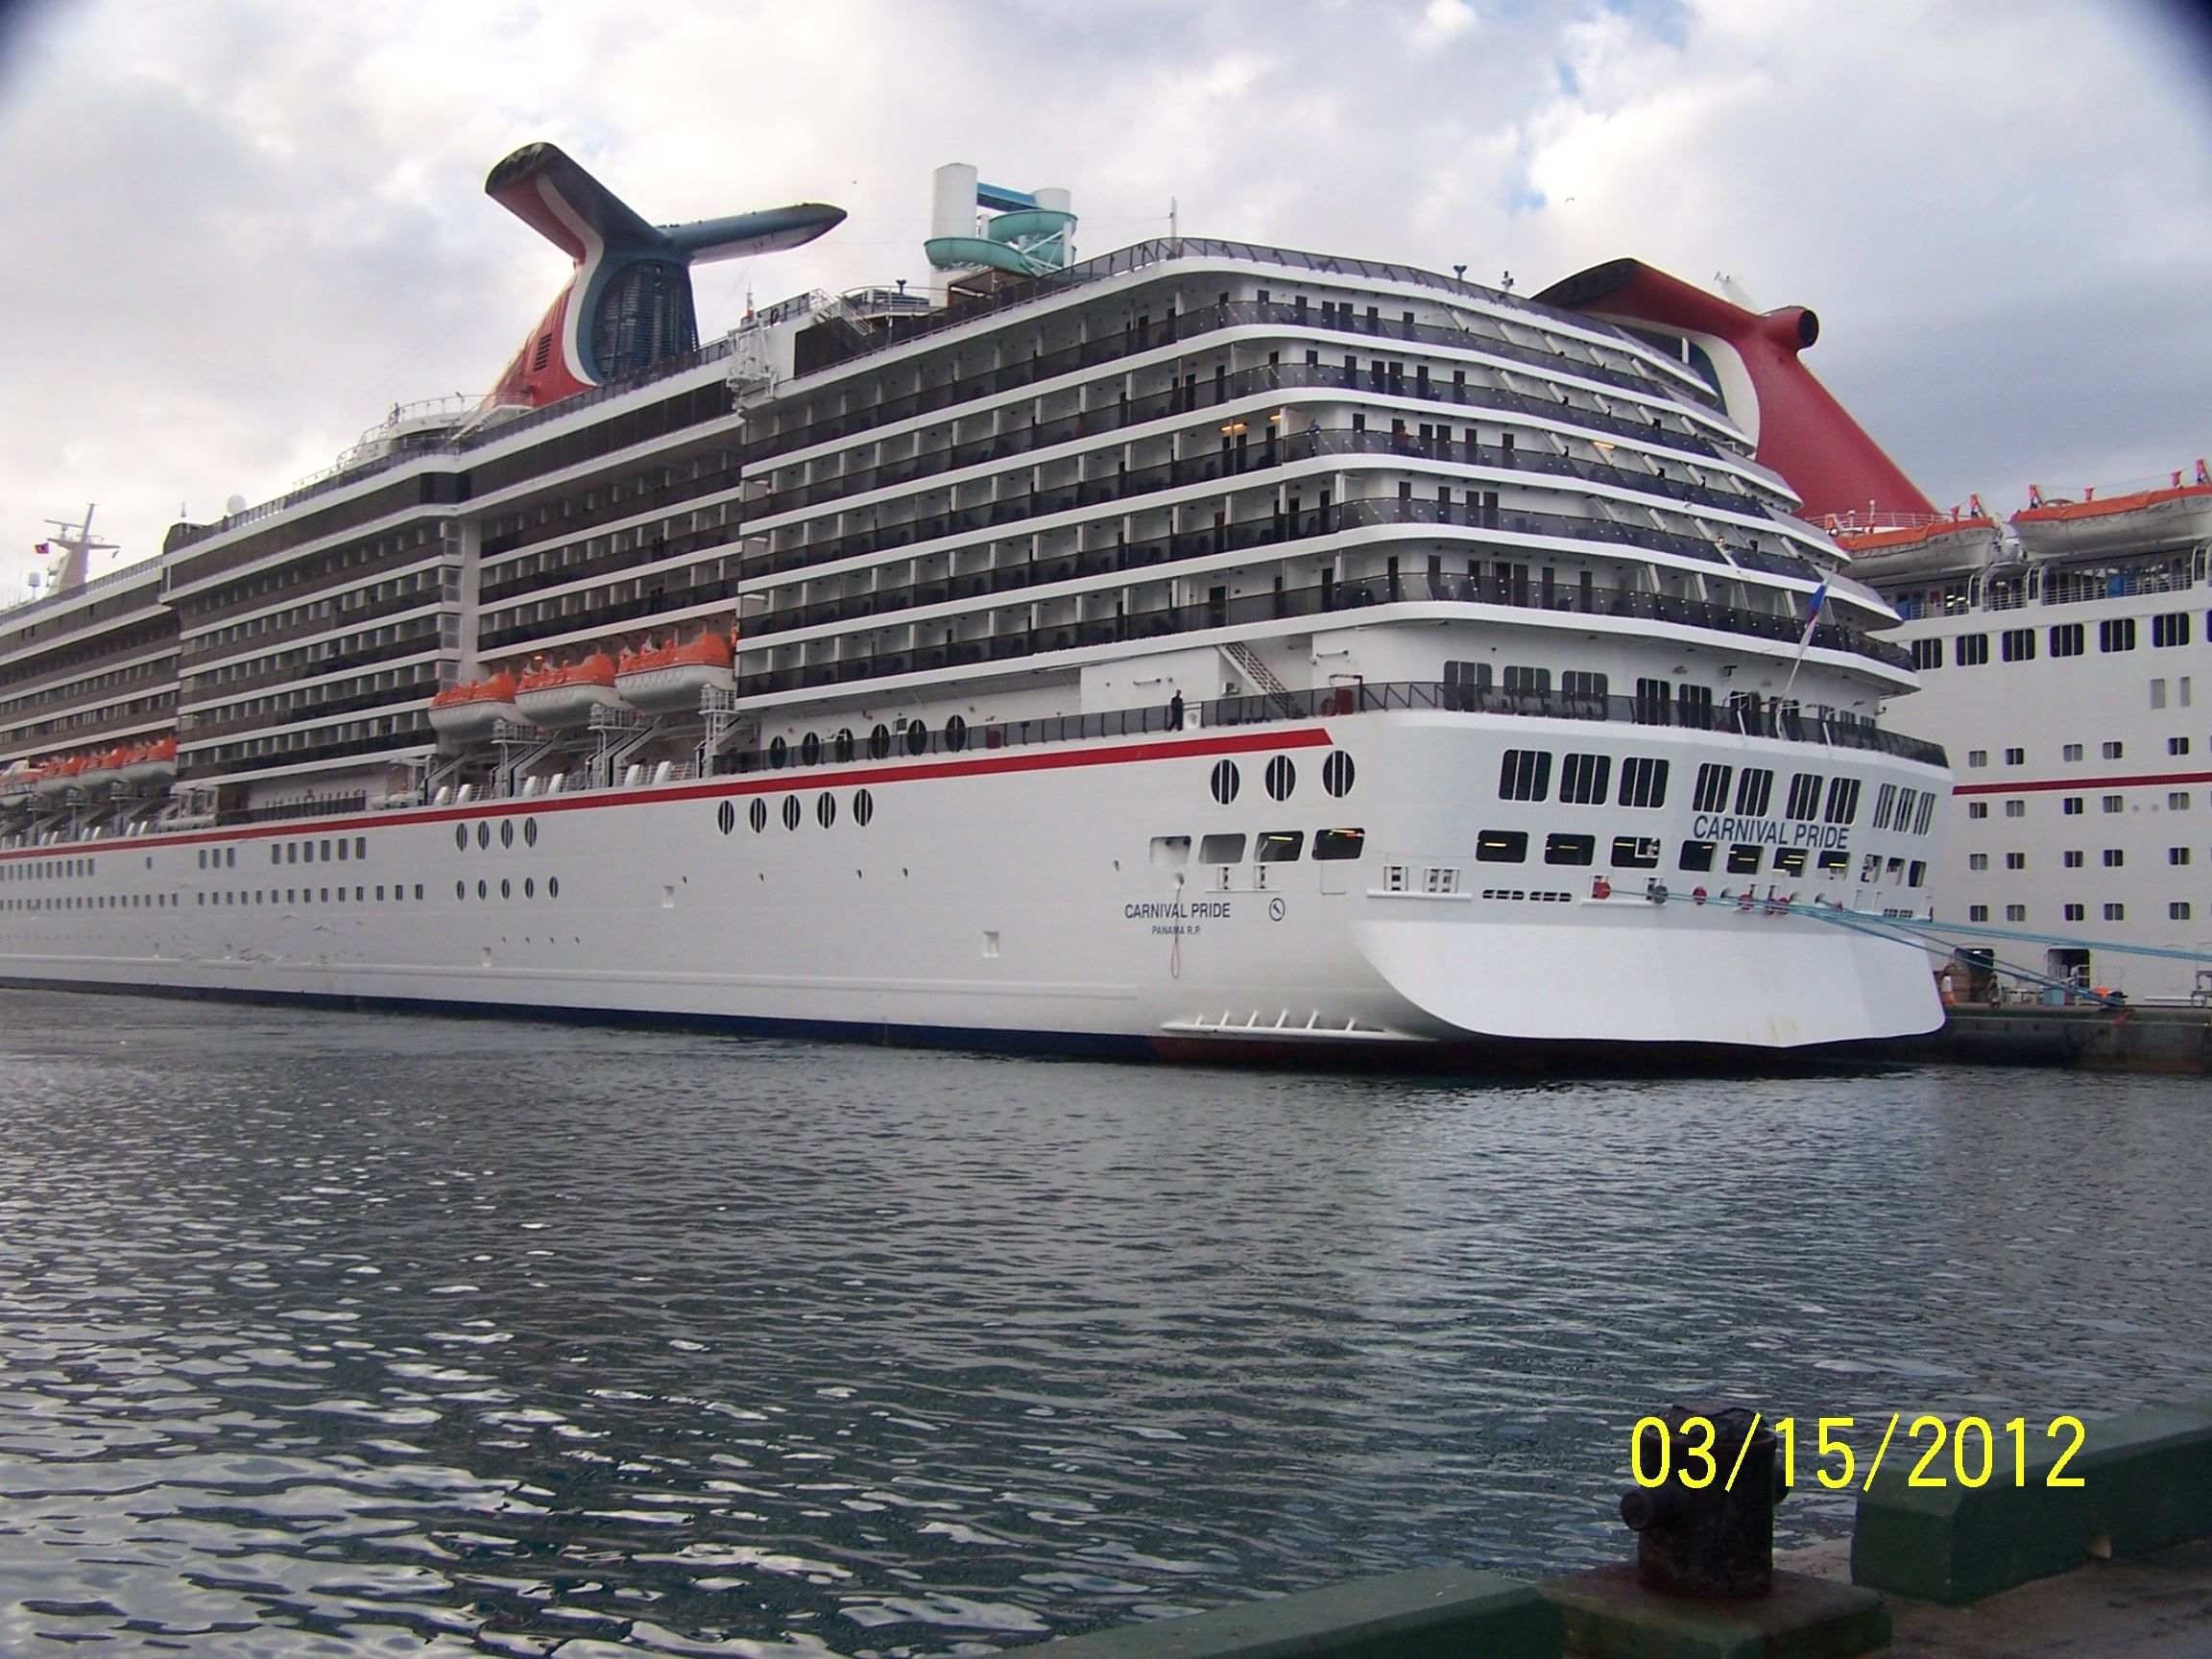 Carnival Pride Cruise To Bahamas Carnival Pride Pinterest - Cruise out of baltimore